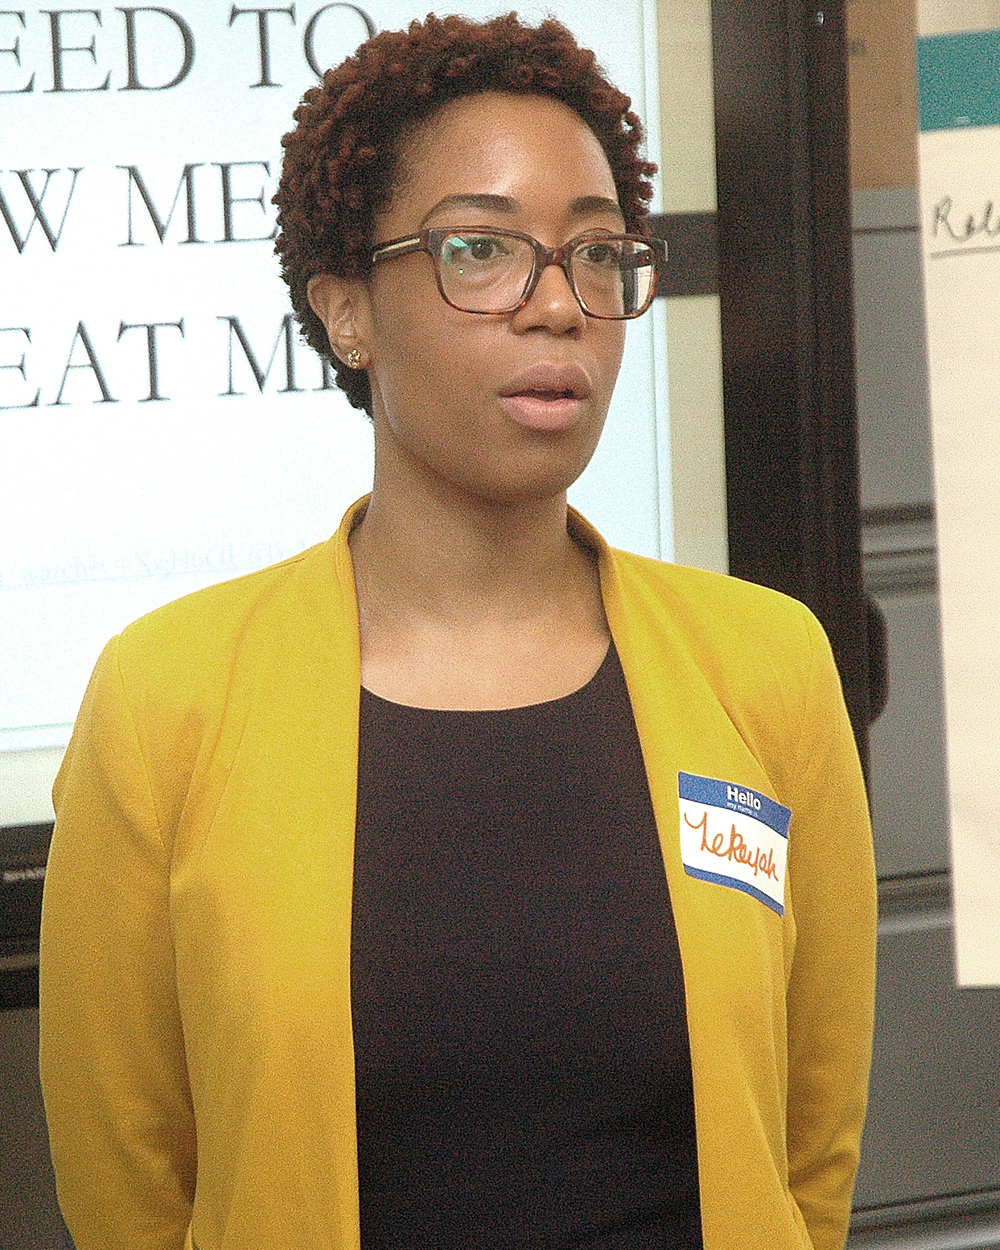 Tekeyah Sears leading a discussion